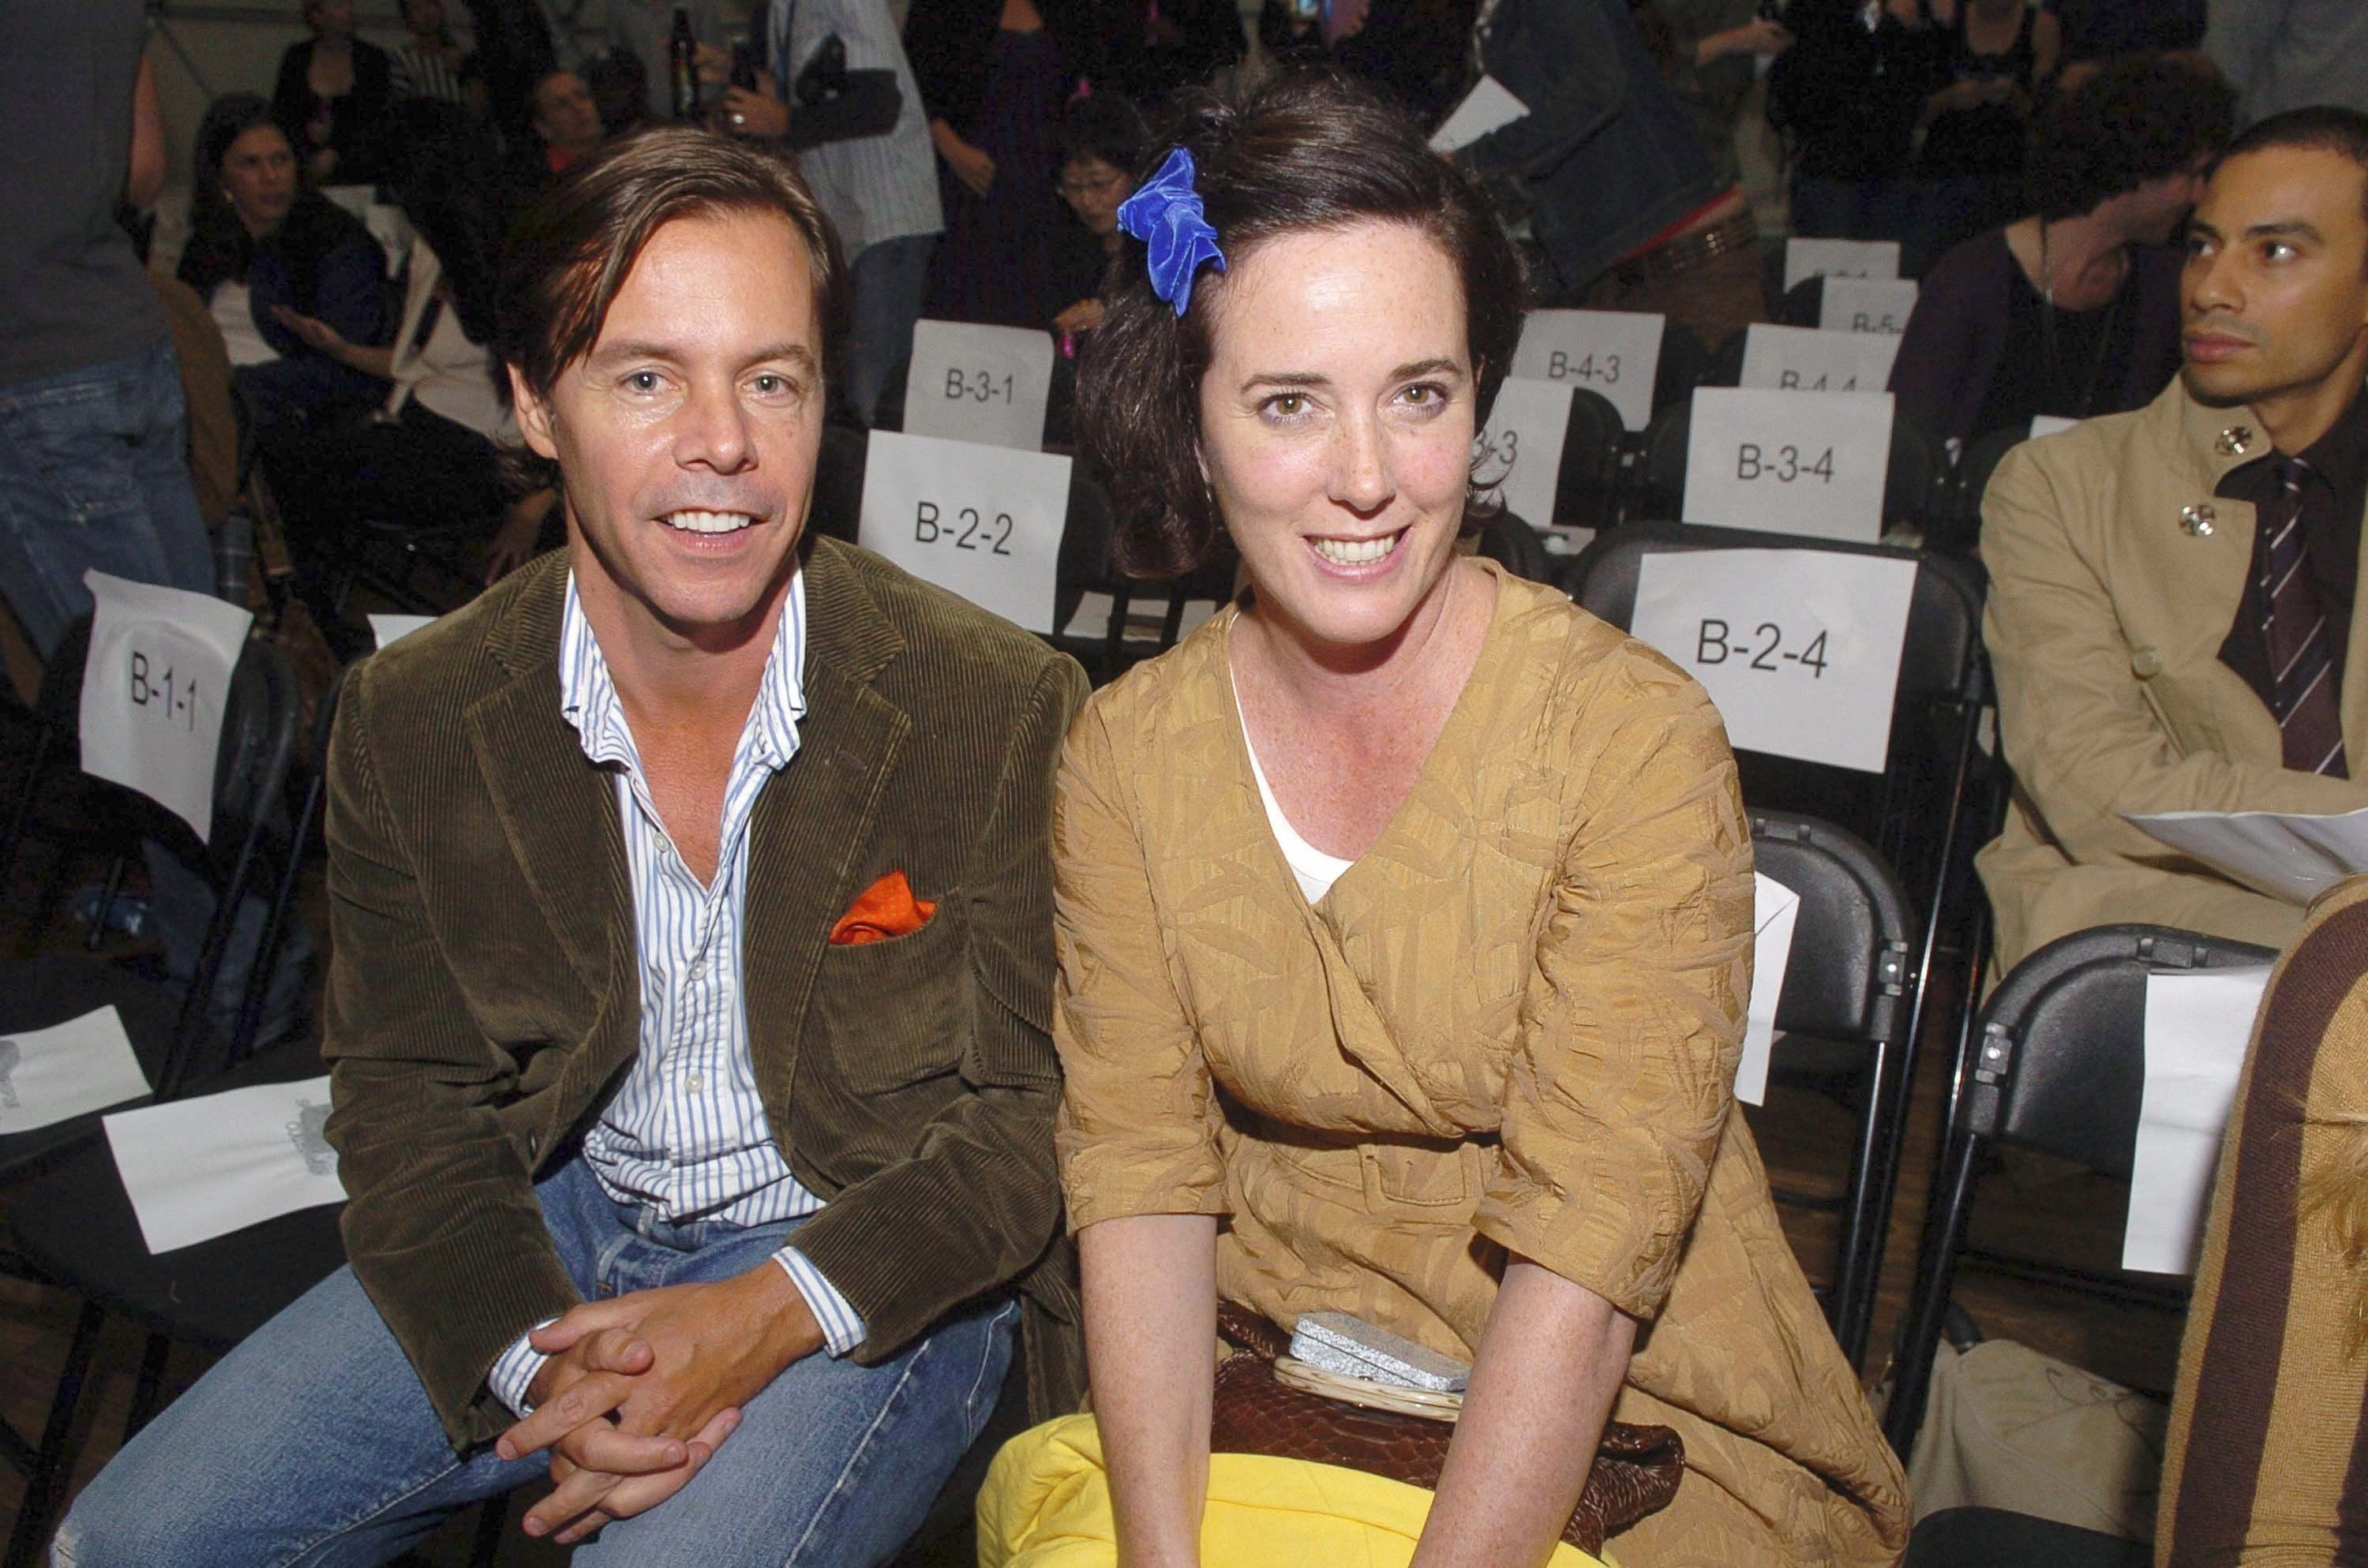 Kate Spade was under treatment for depression, anxiety -Husband